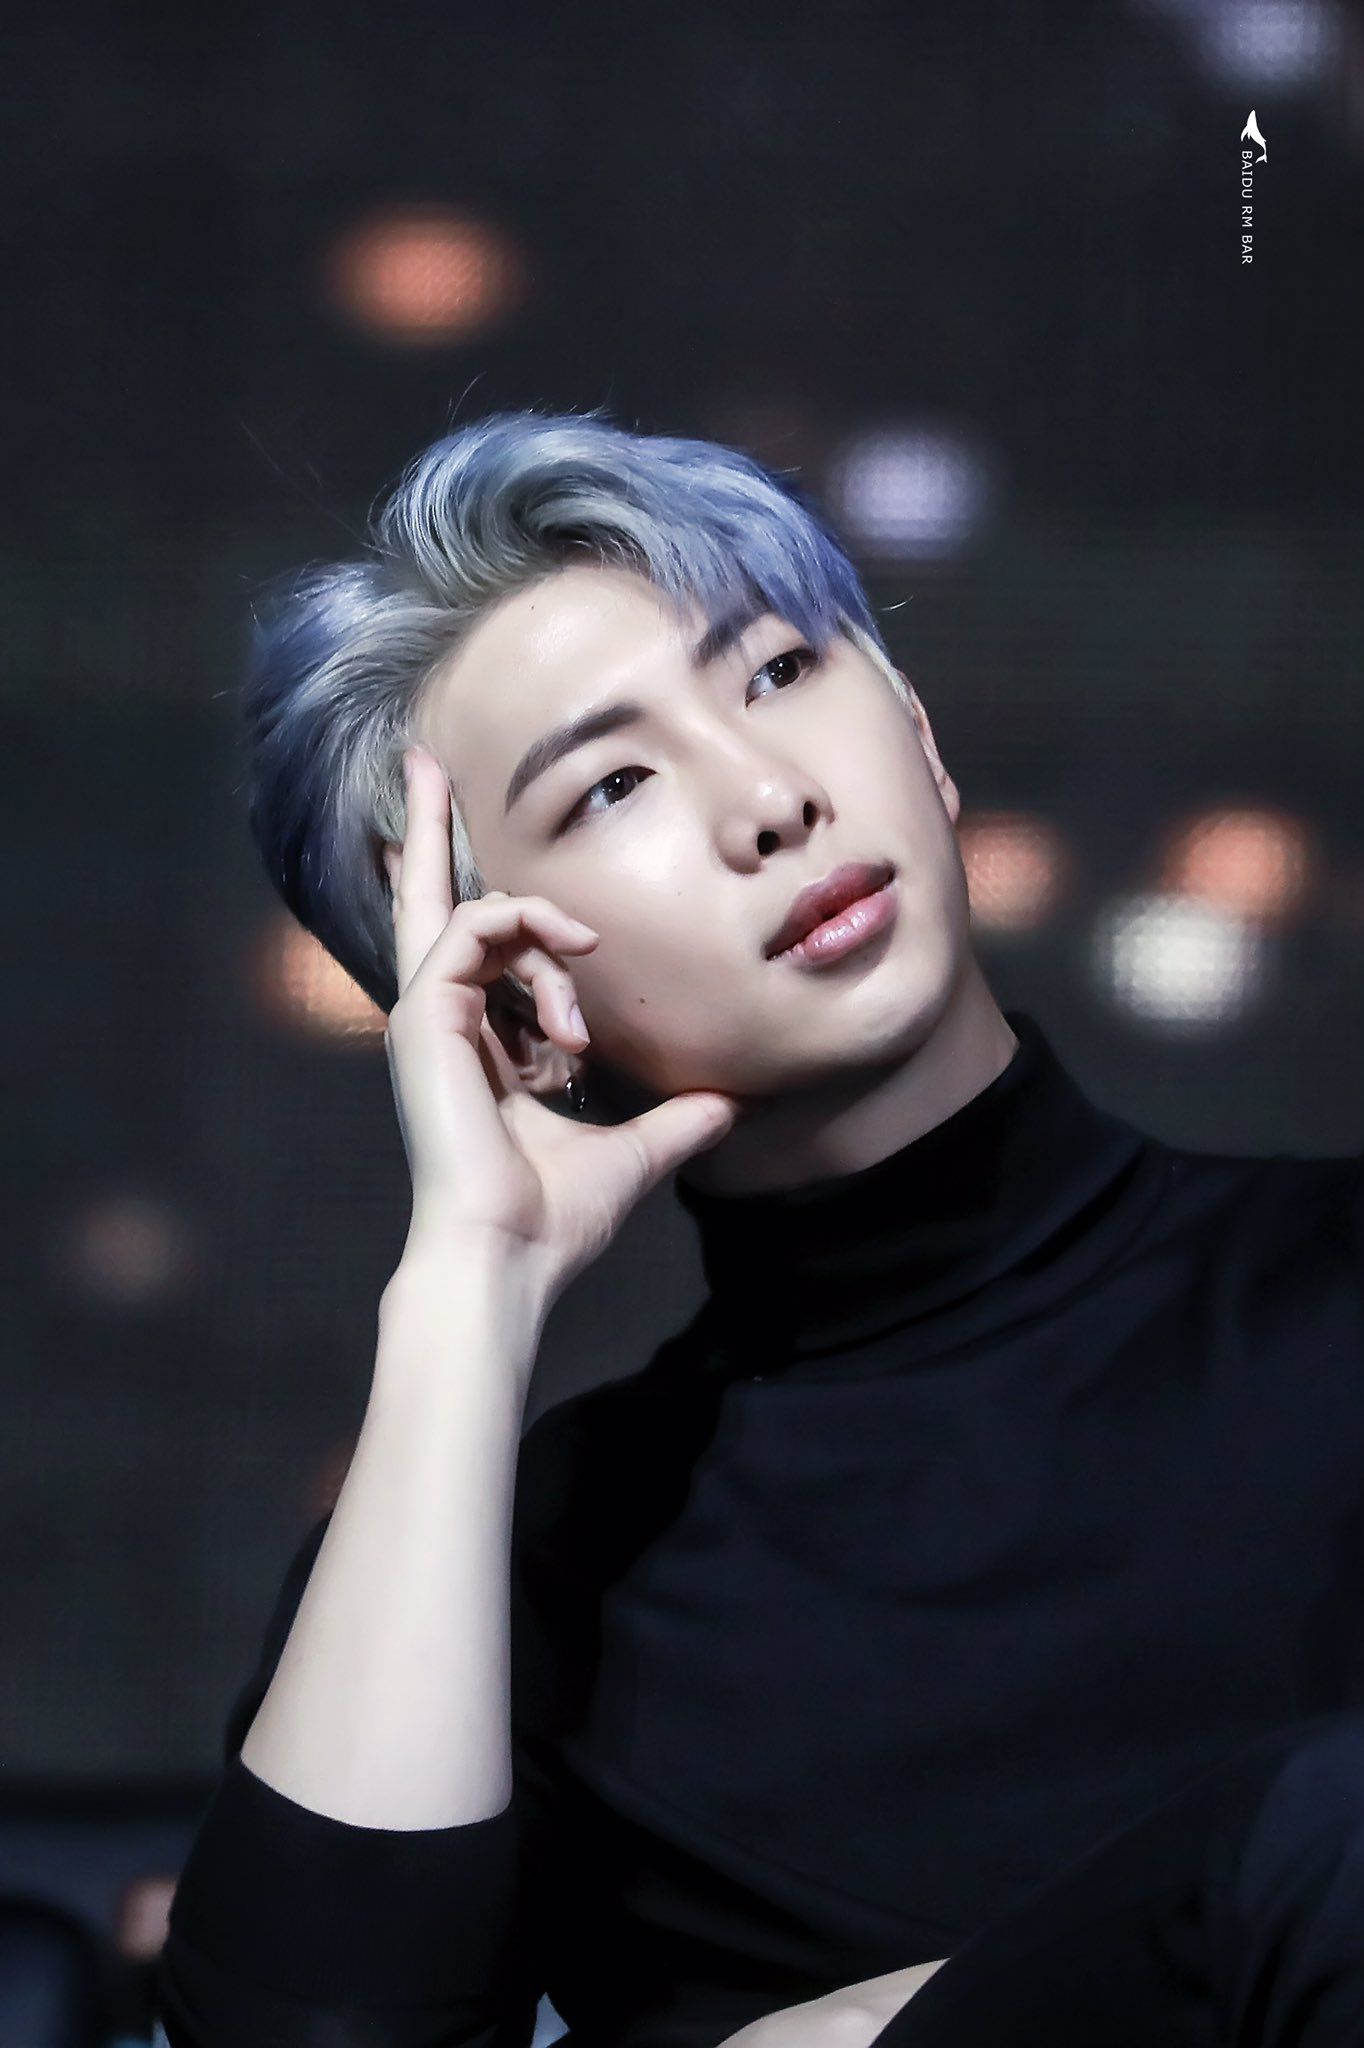 Who is Namjoon Why do people admire him   Quora